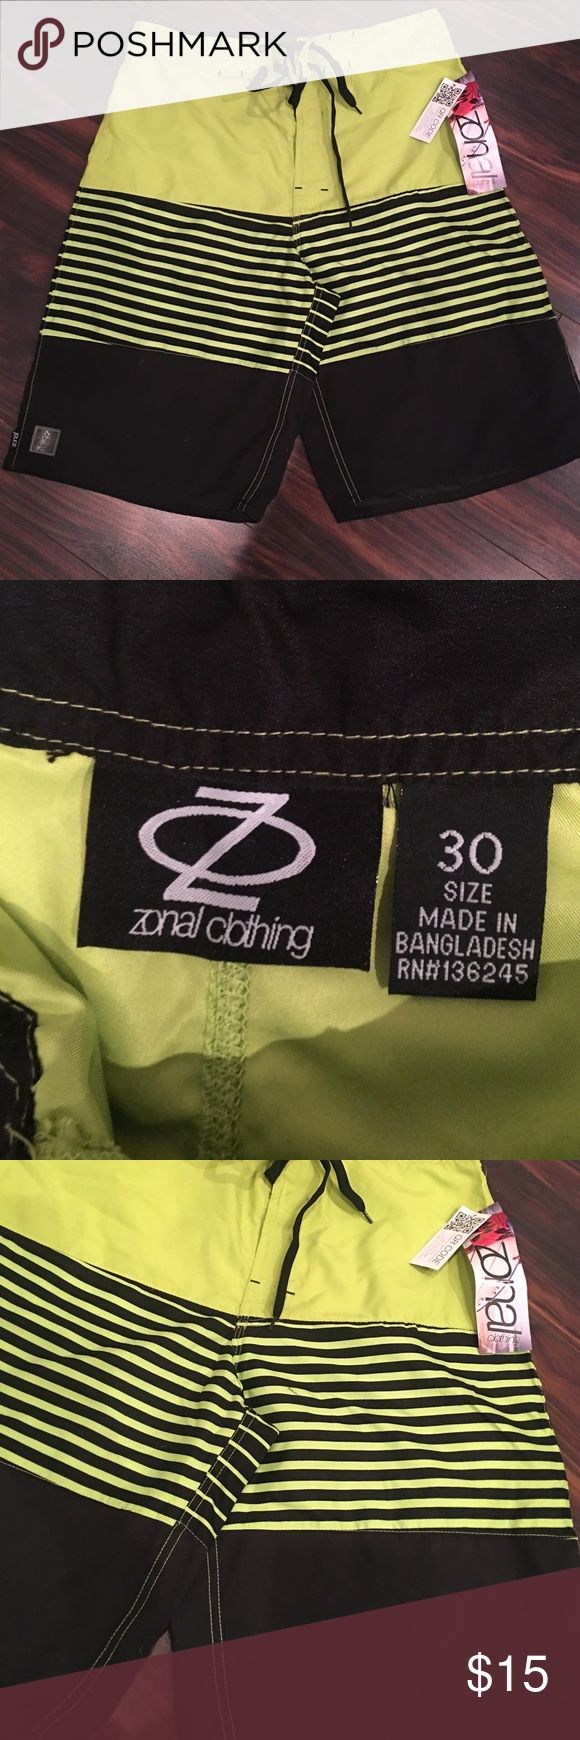 MENS neon yellow shorts NEW with tags. Neon yellow shorts Shorts Athletic